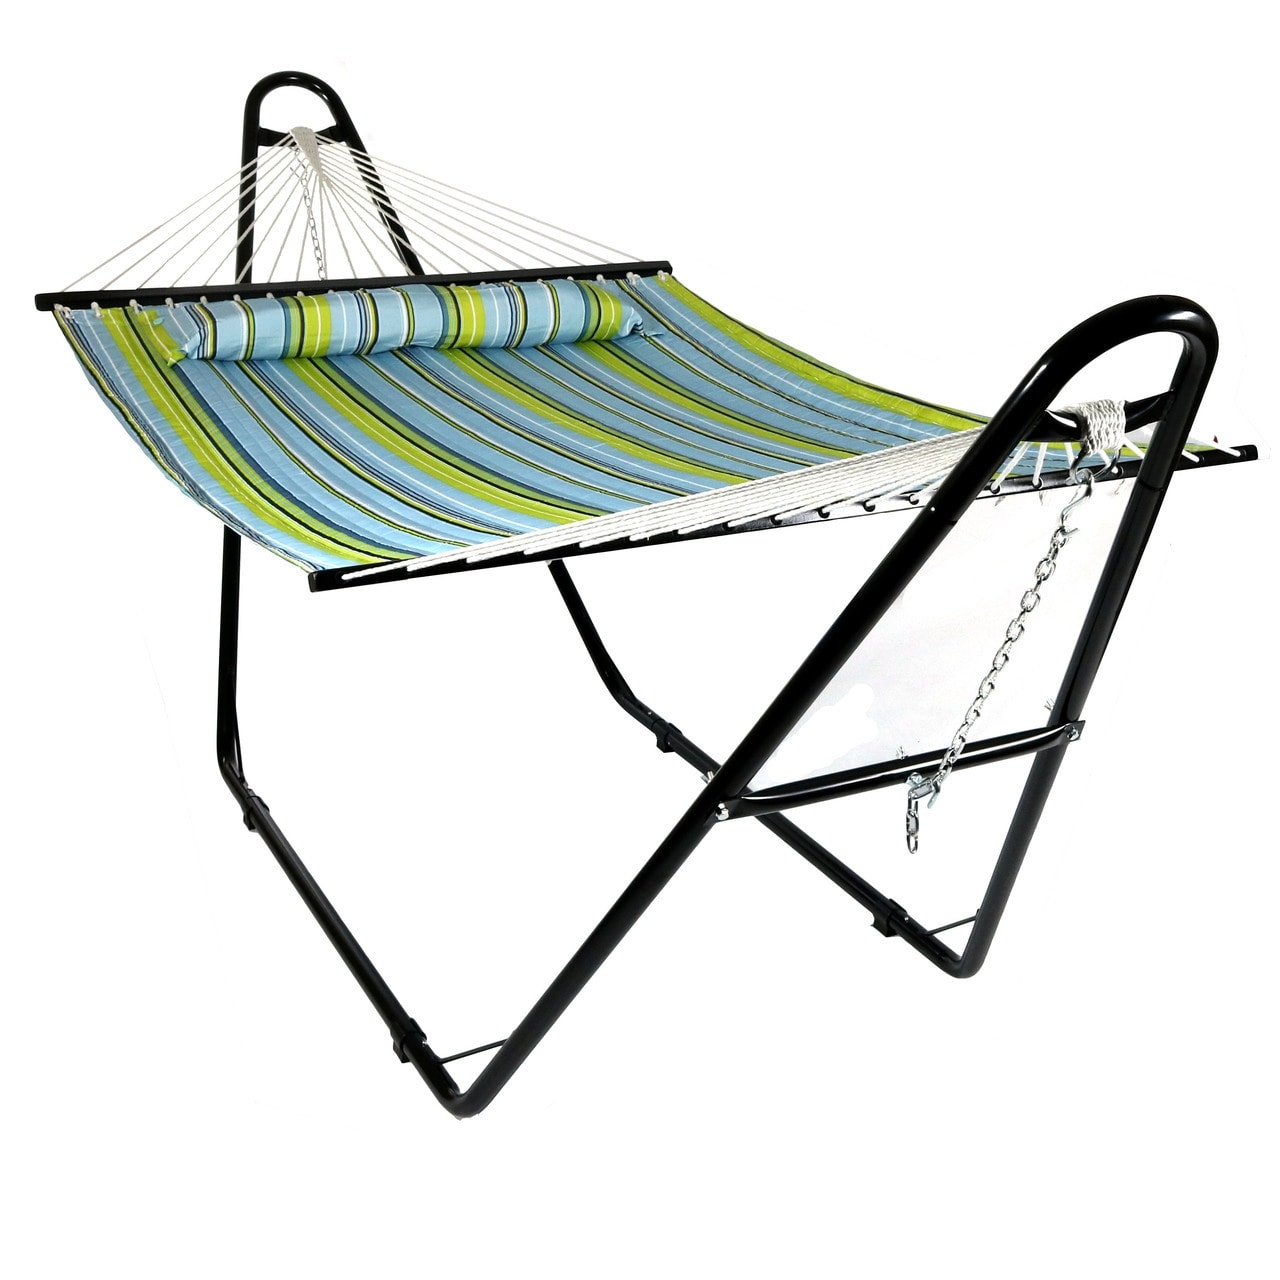 Sunnydaze Quilted Double Fabric 2-Person Hammock with Multi-Use Universal Stand - Thumbnail 1